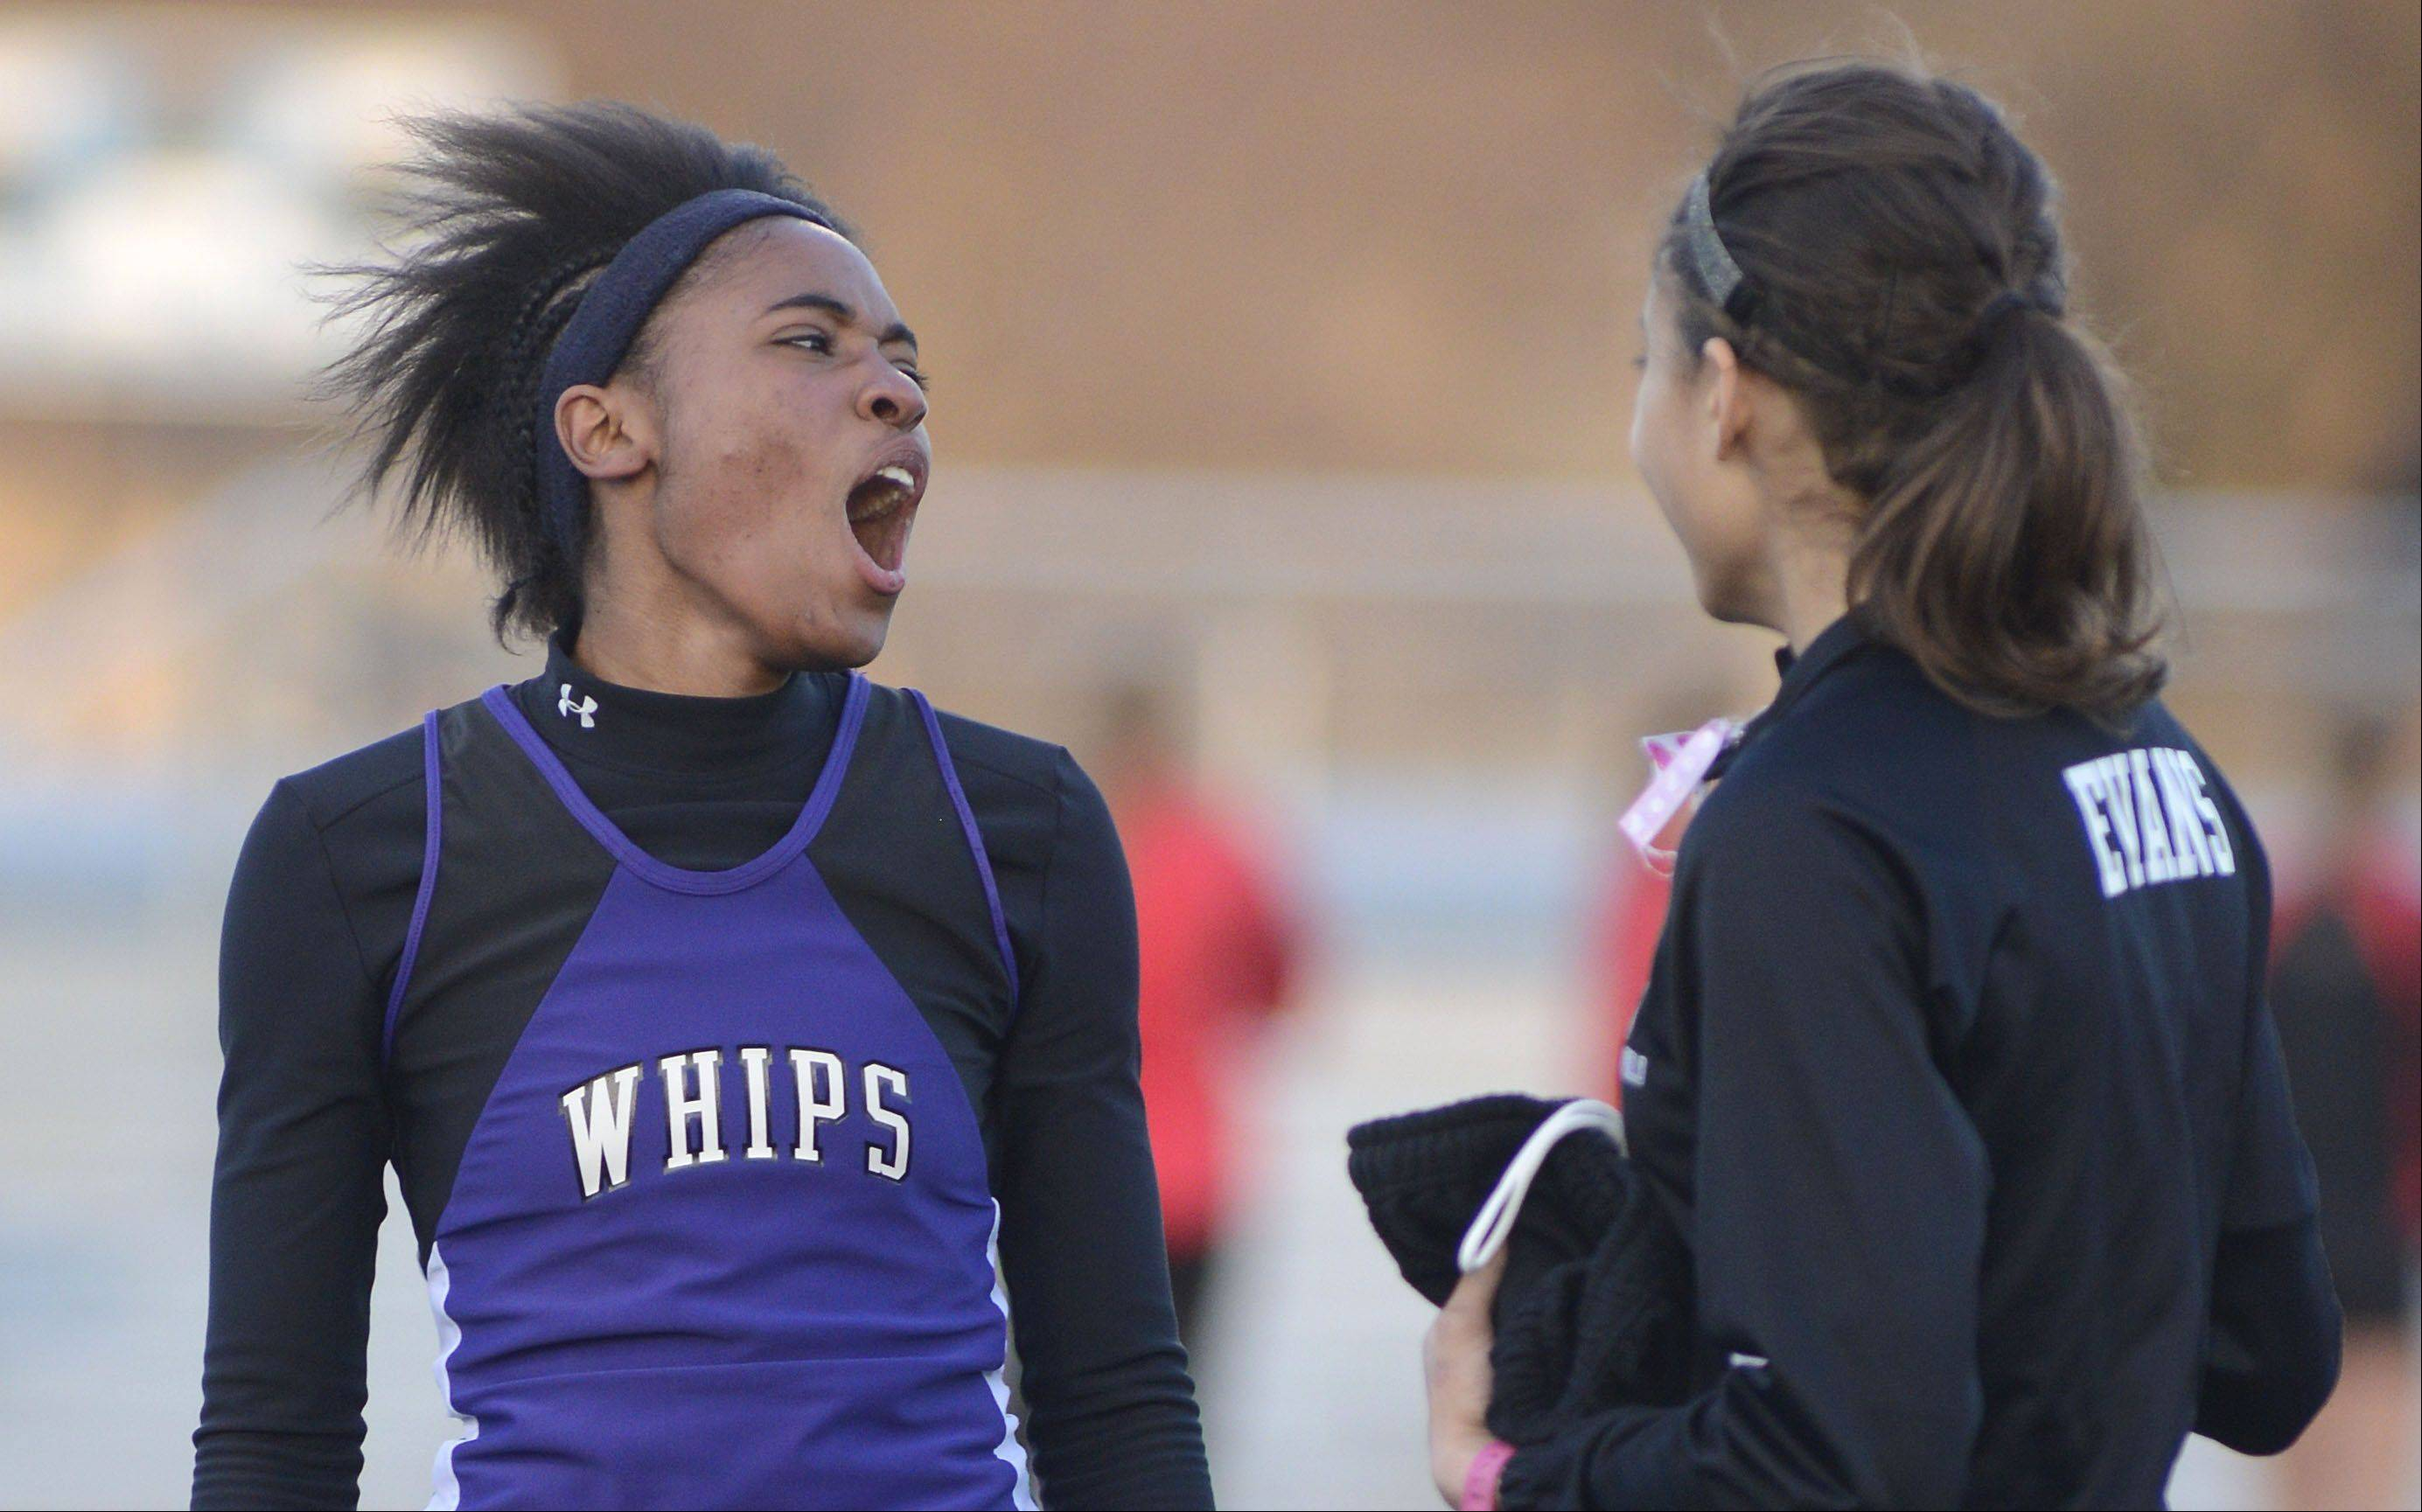 Hampshire's Ashley Fouch celebrates her win in the final heat of the 400 meter dash finals at the Kane County Invitational track in Geneva meet on Friday, April 26.